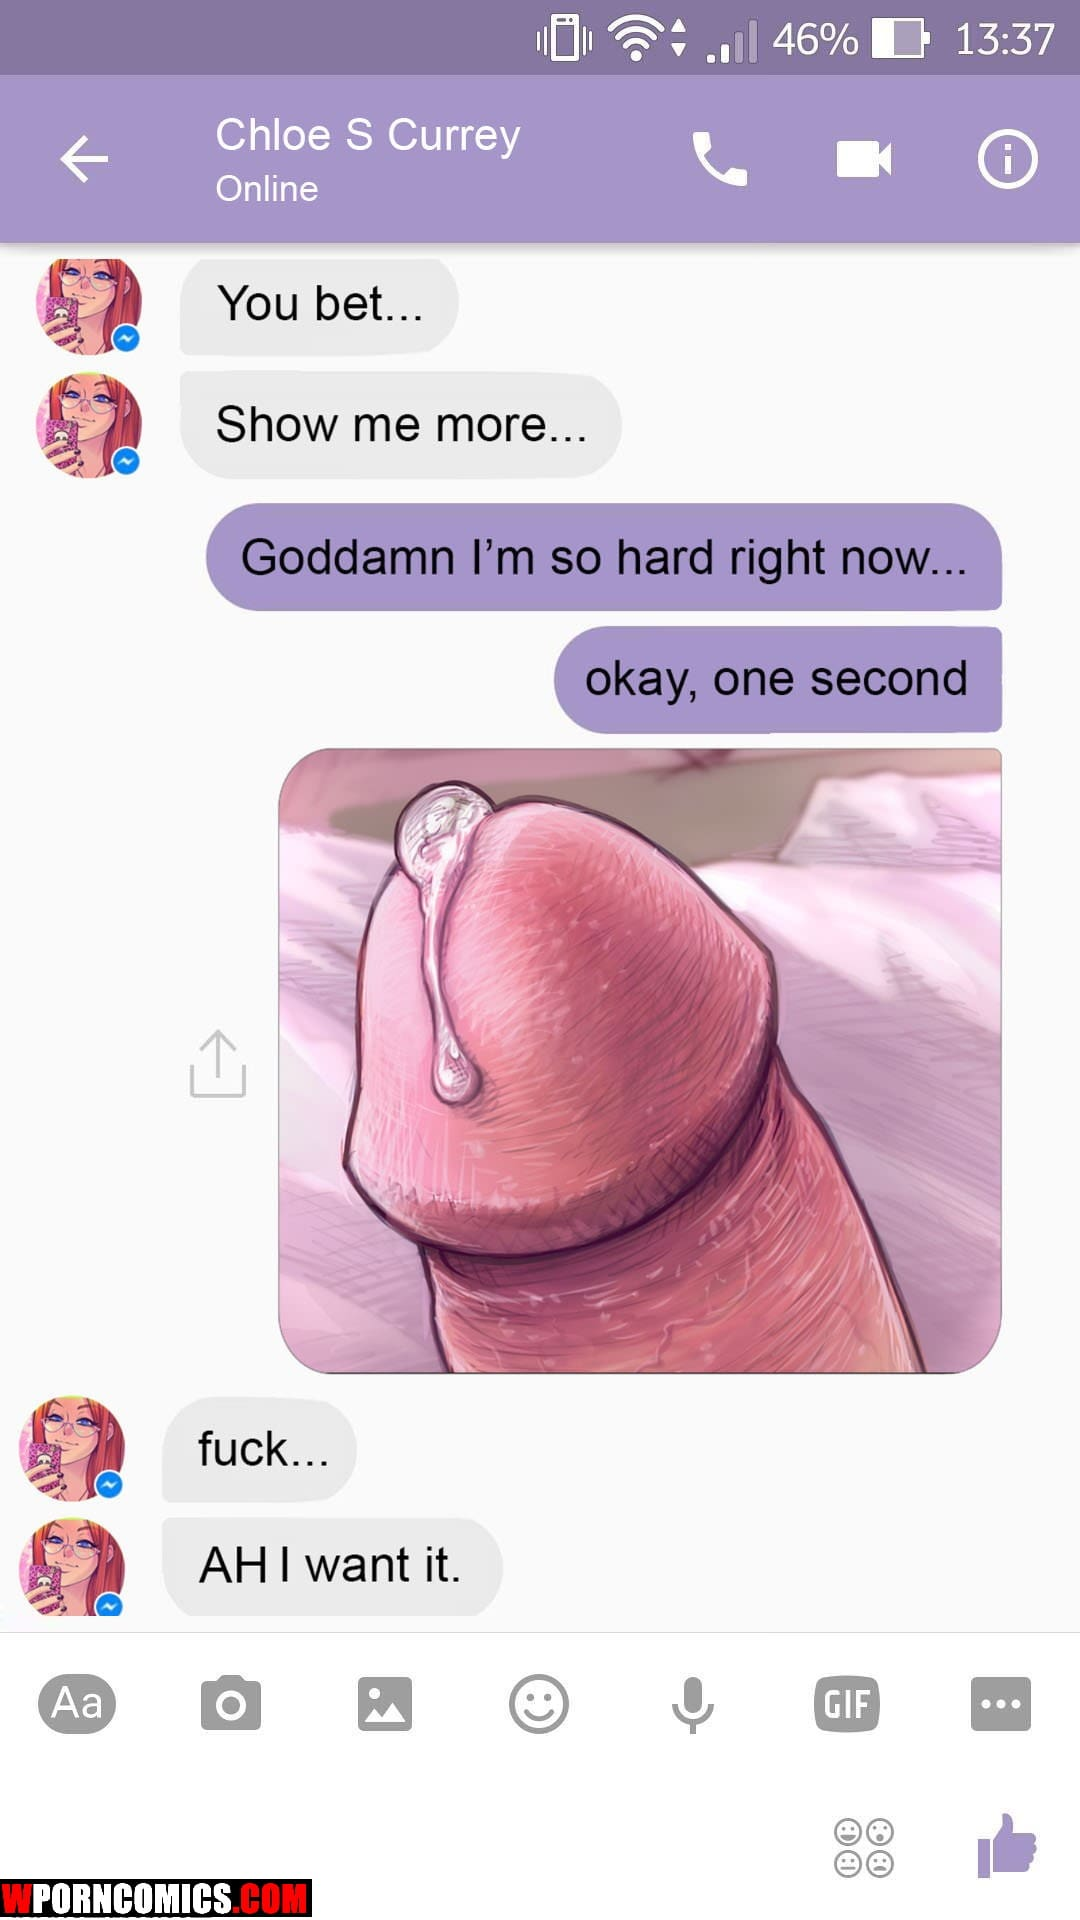 porn-comic-chat-with-chloe-2019-12-28/porn-comic-chat-with-chloe-2019-12-28-40708.jpg